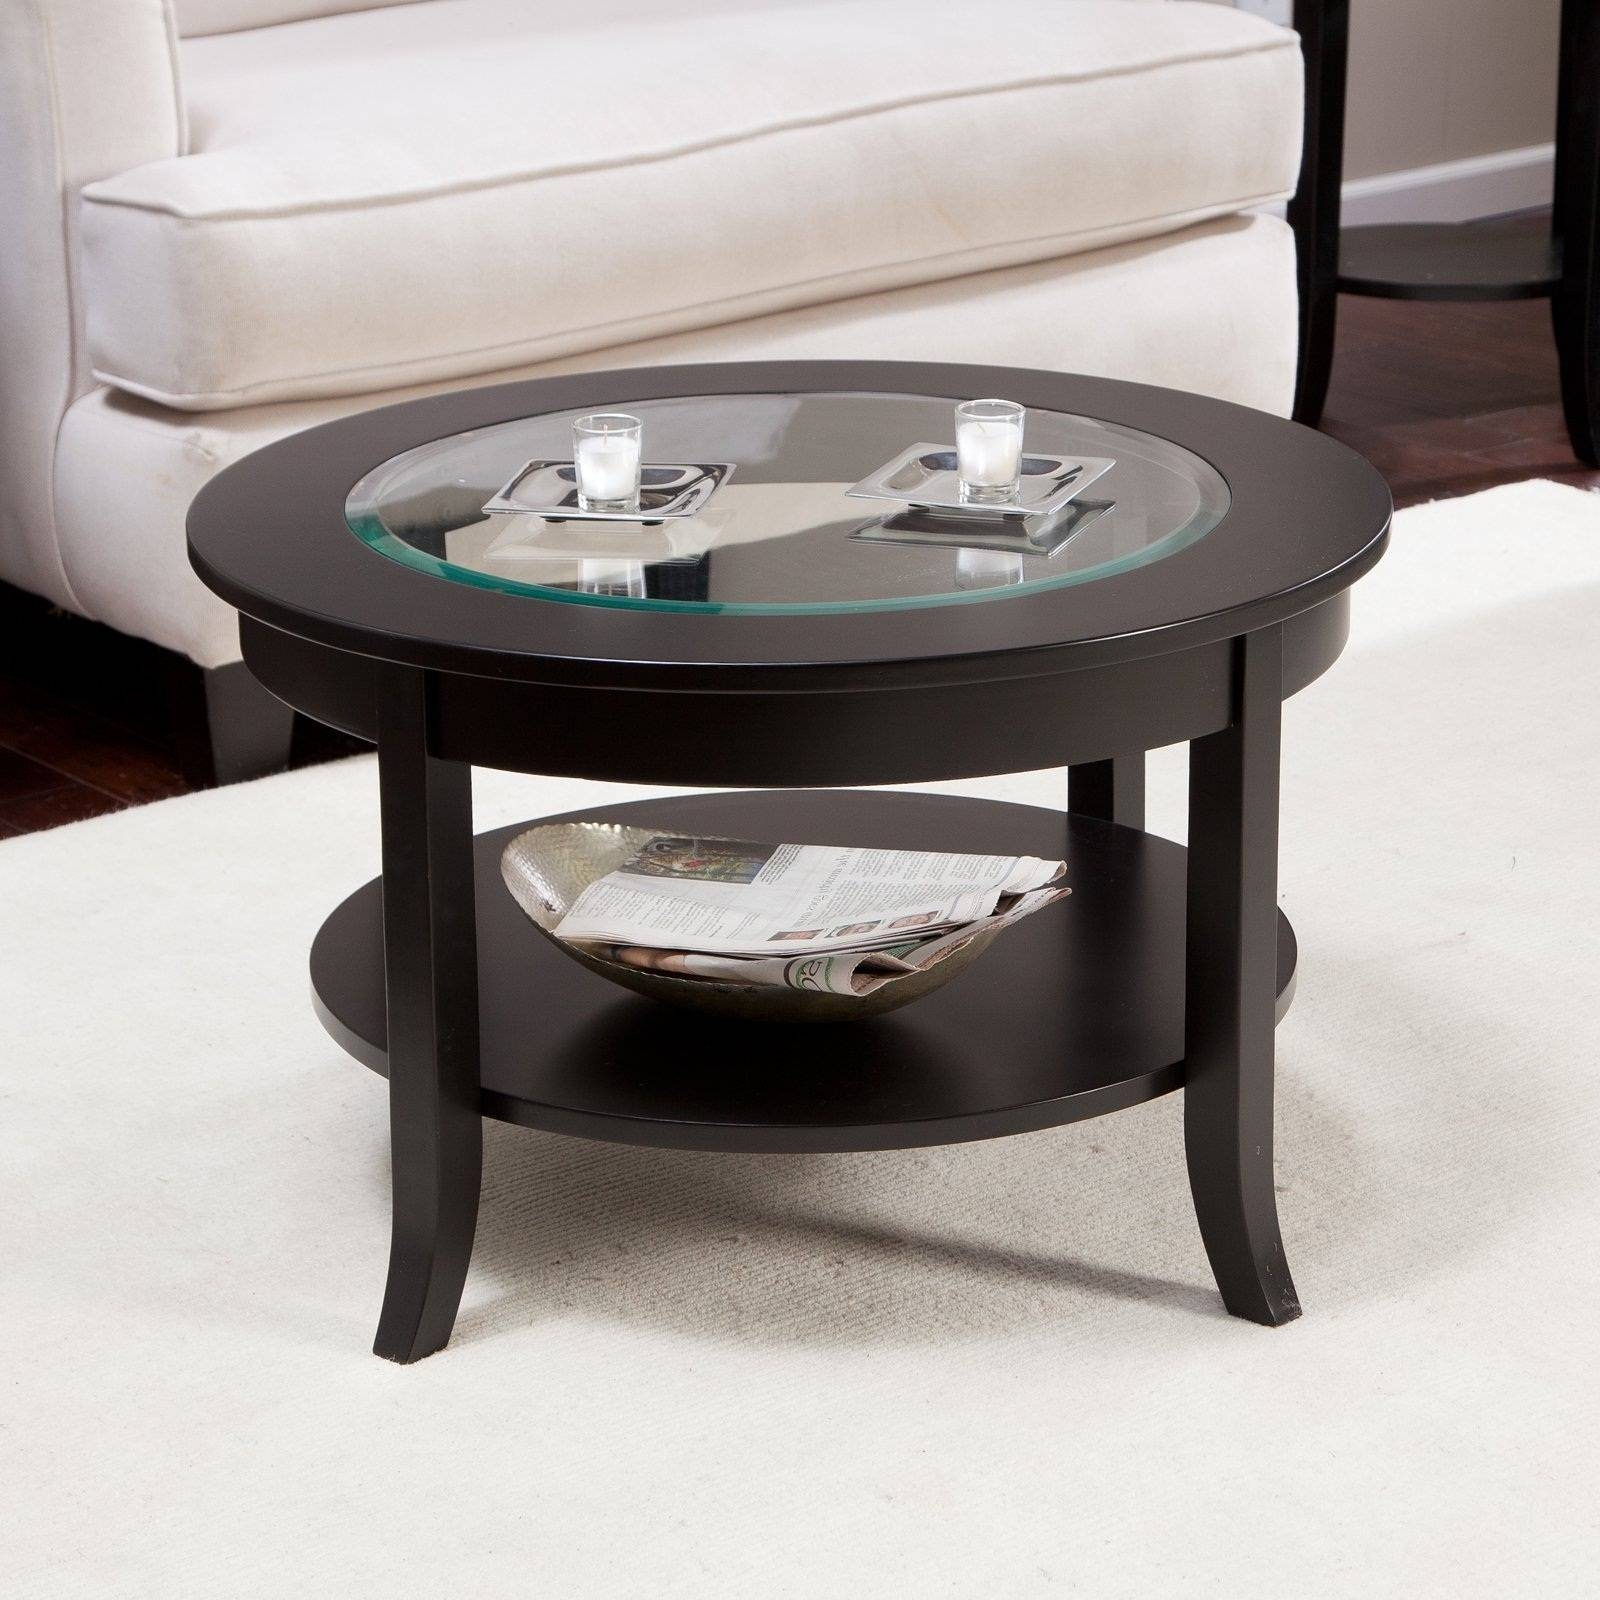 Round Glass Coffee Table. Simple Elegance Wood Base Tables With intended for Round Wood And Glass Coffee Tables (Image 12 of 15)